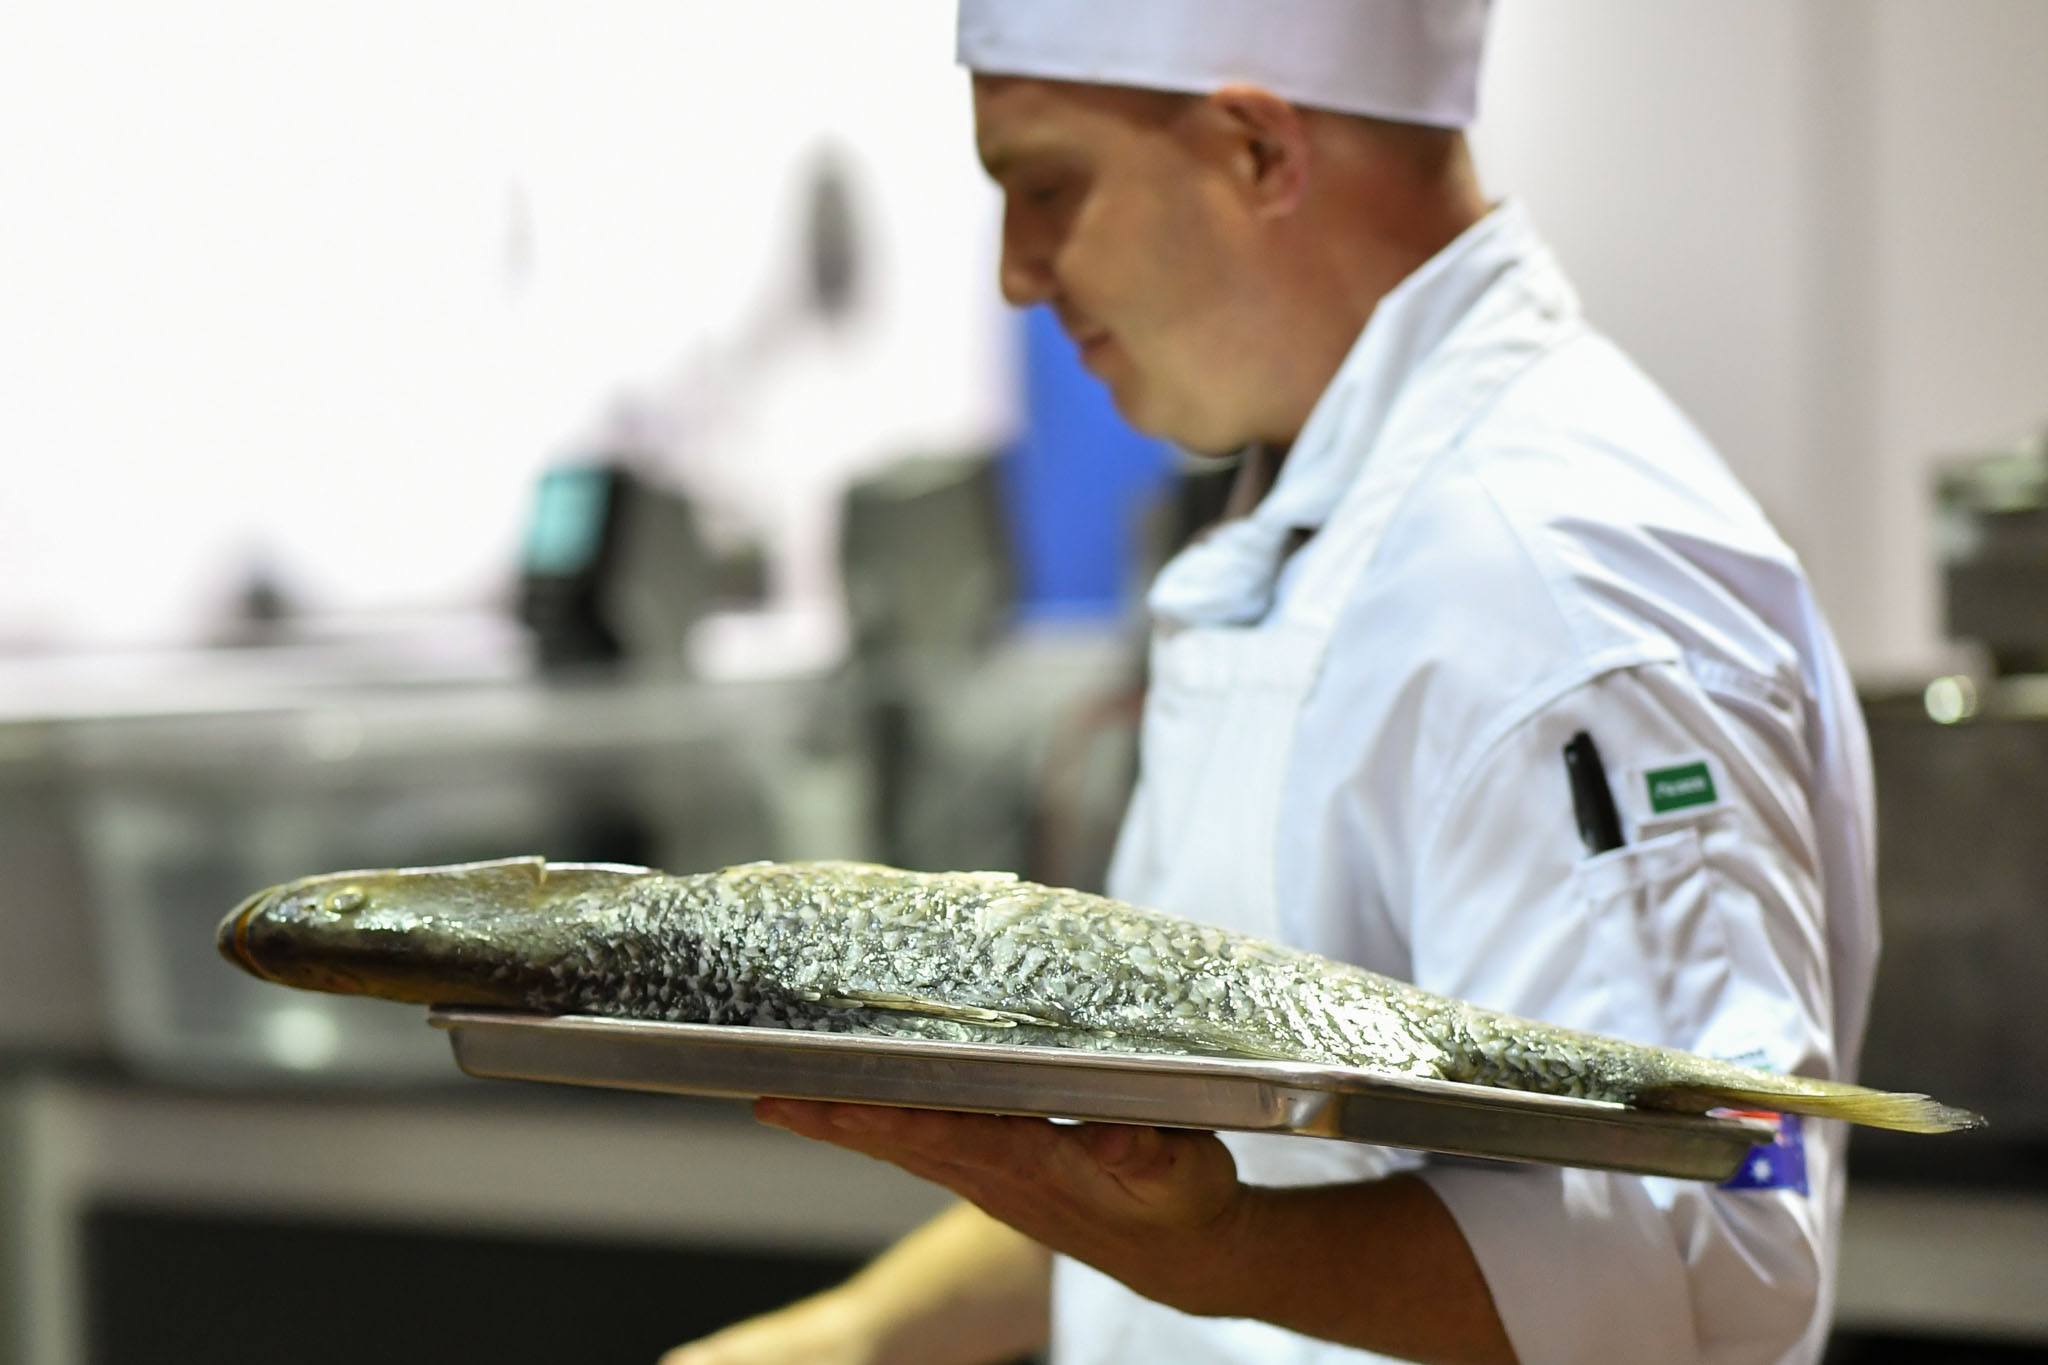 Melbourne, 30 May 2017 - Michael Cole of the Georgie Bass CafÈ & Cookery in Flinders walks with a barramundi fish at the Australian selection trials of the Bocuse d'Or culinary competition held during the Food Service Australia show at the Royal Exhibition Building in Melbourne, Australia. Photo Sydney Low